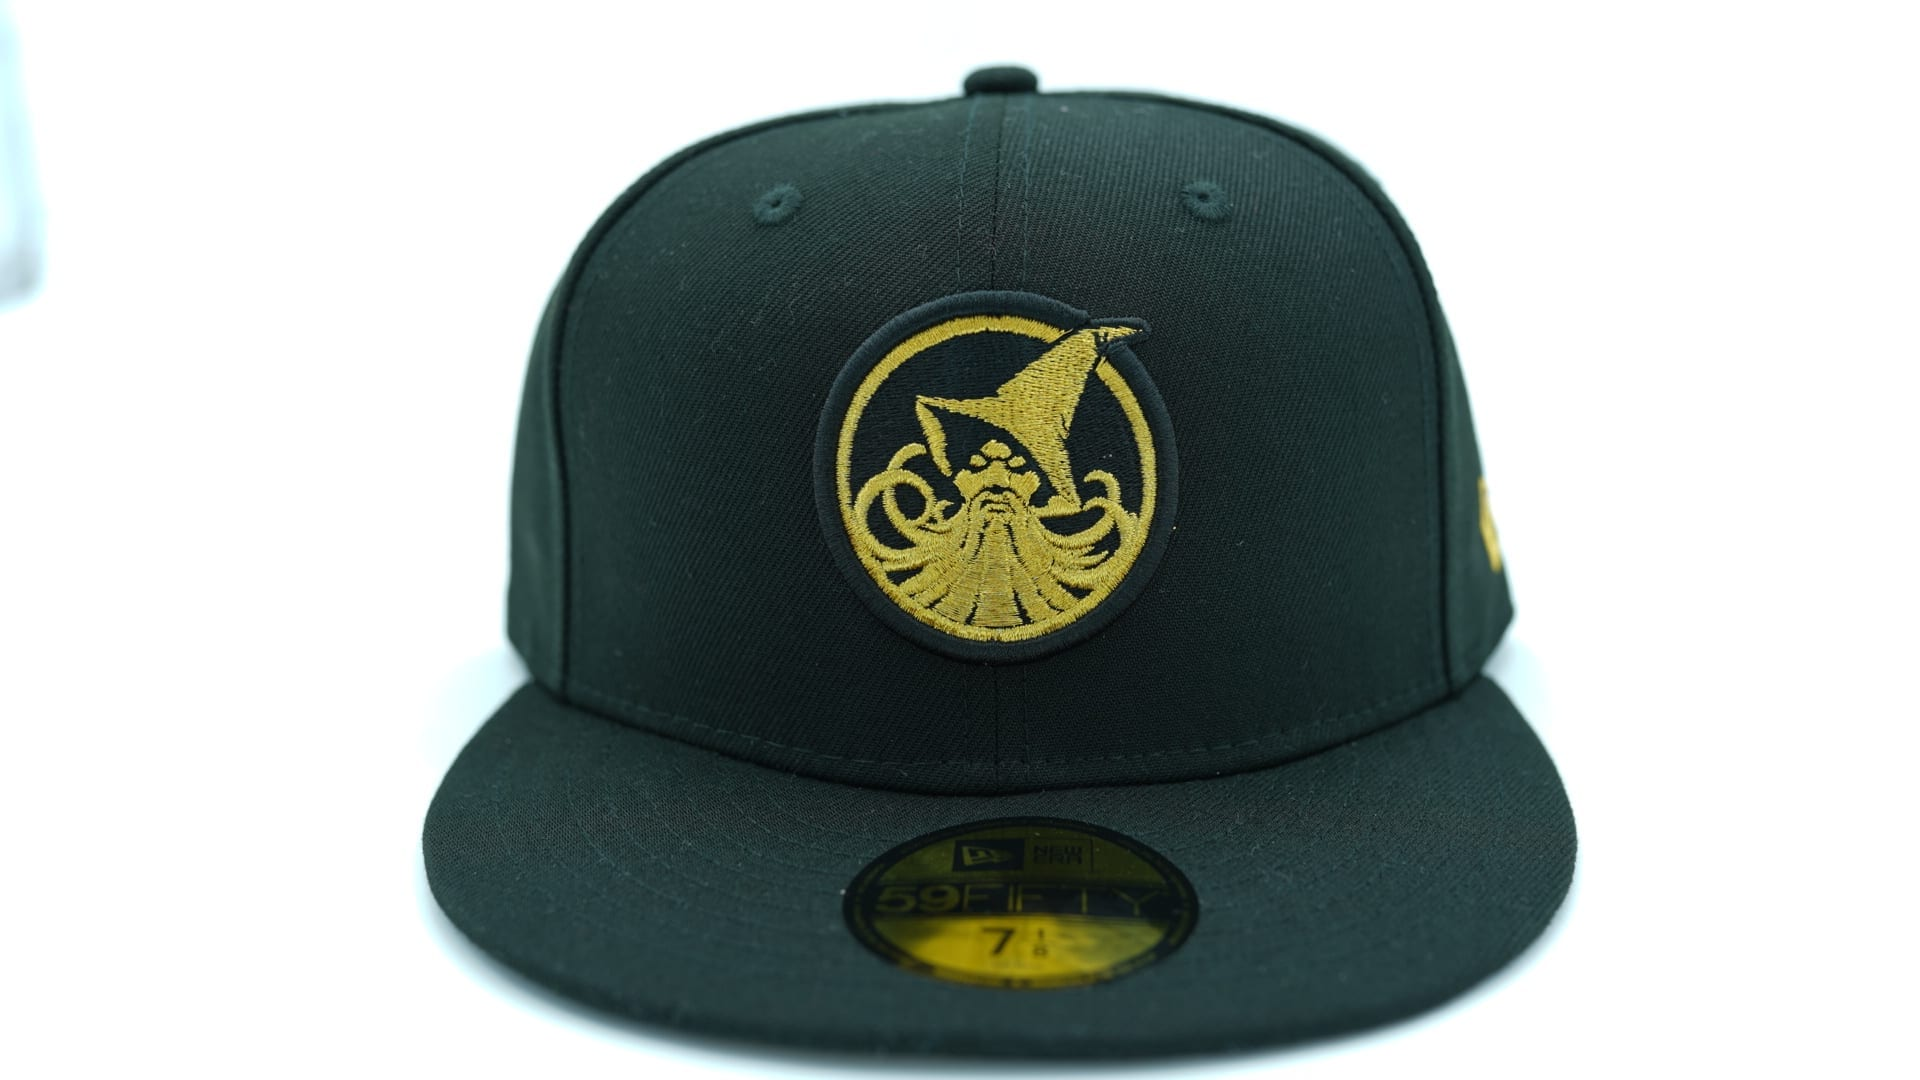 GOTG Groot Armor 59Fifty Fitted Cap by MARVEL COMICS x NEW ERA